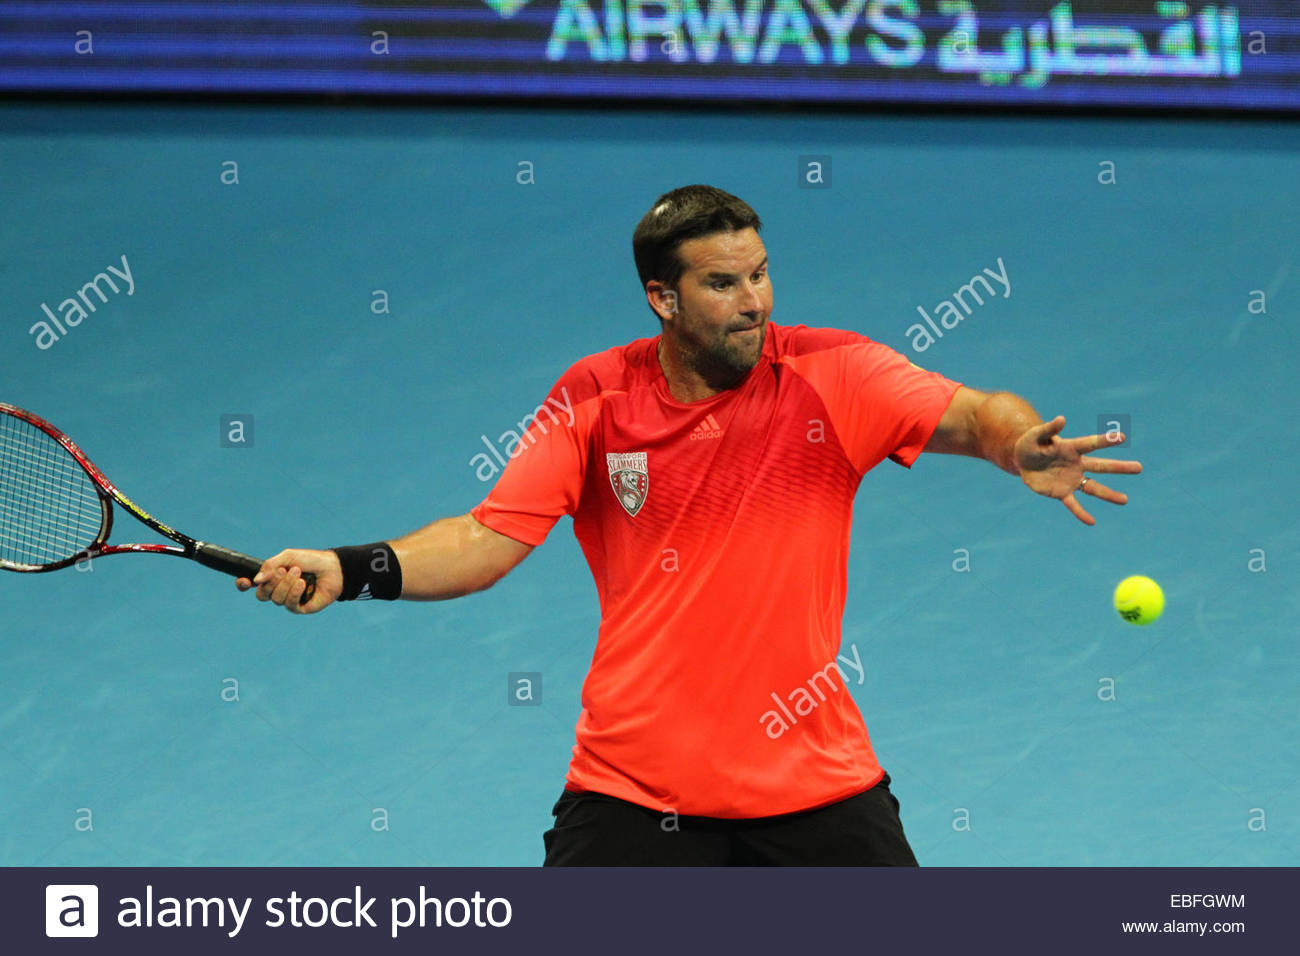 Patrick Rafter the Singapore Slammers makes a forehand return to